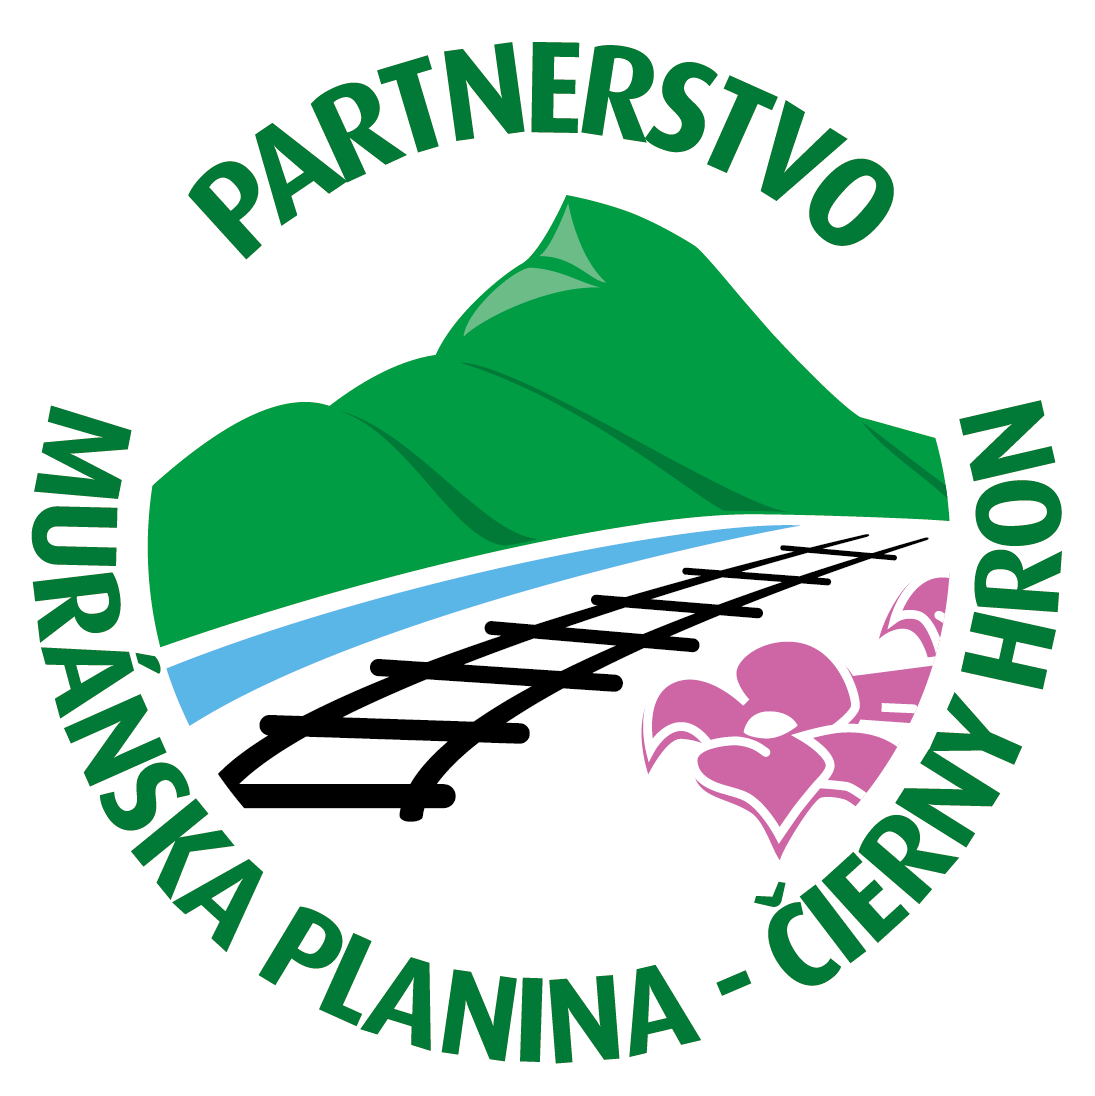 Partnerstvo MP-ČH